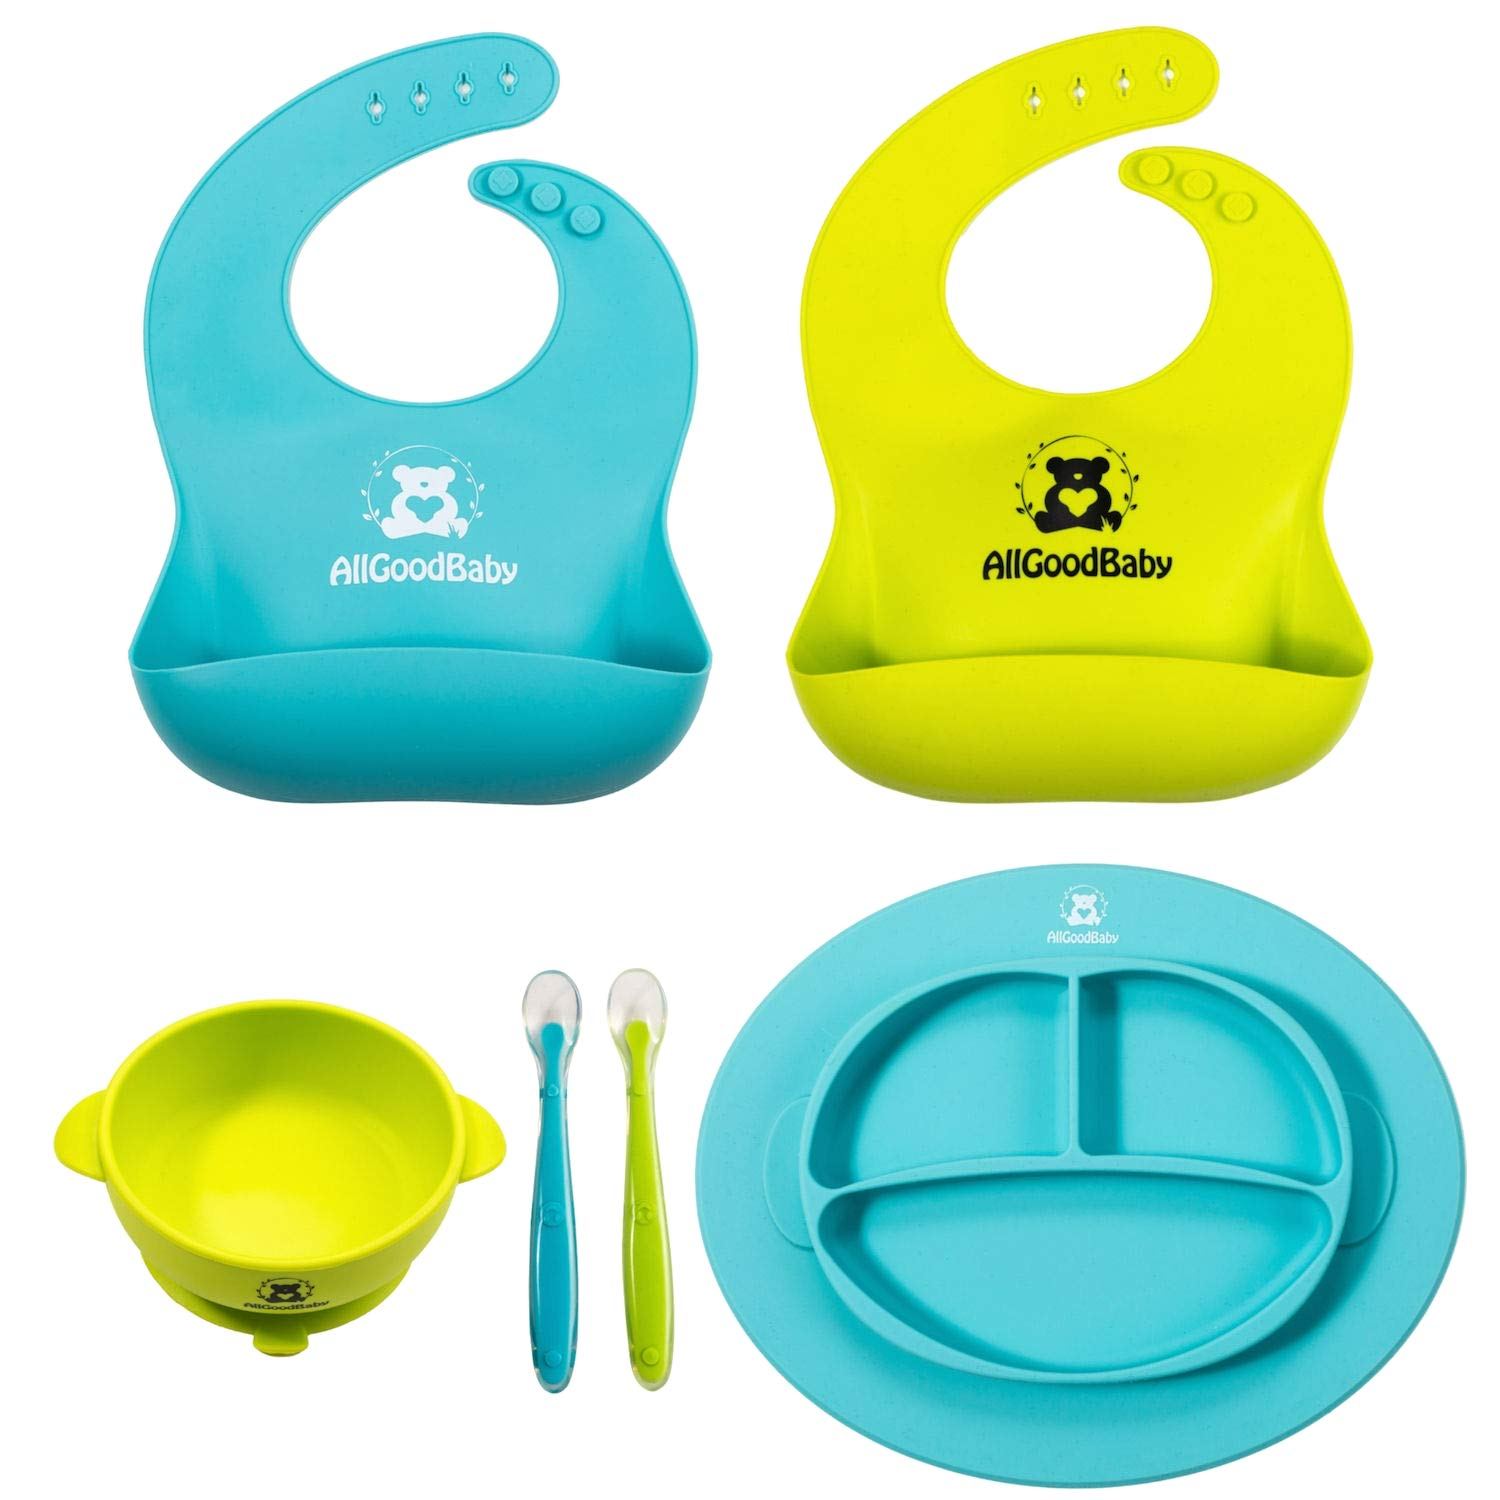 Baby & Toddler Feeding Set - 2 Pocket Food Catching Bibs, 2 Spoons, Placemat Suction Plate & Bowl   BPA Free Silicone   Safe for Children   Waterproof Spill Resistant Easy Cleaning